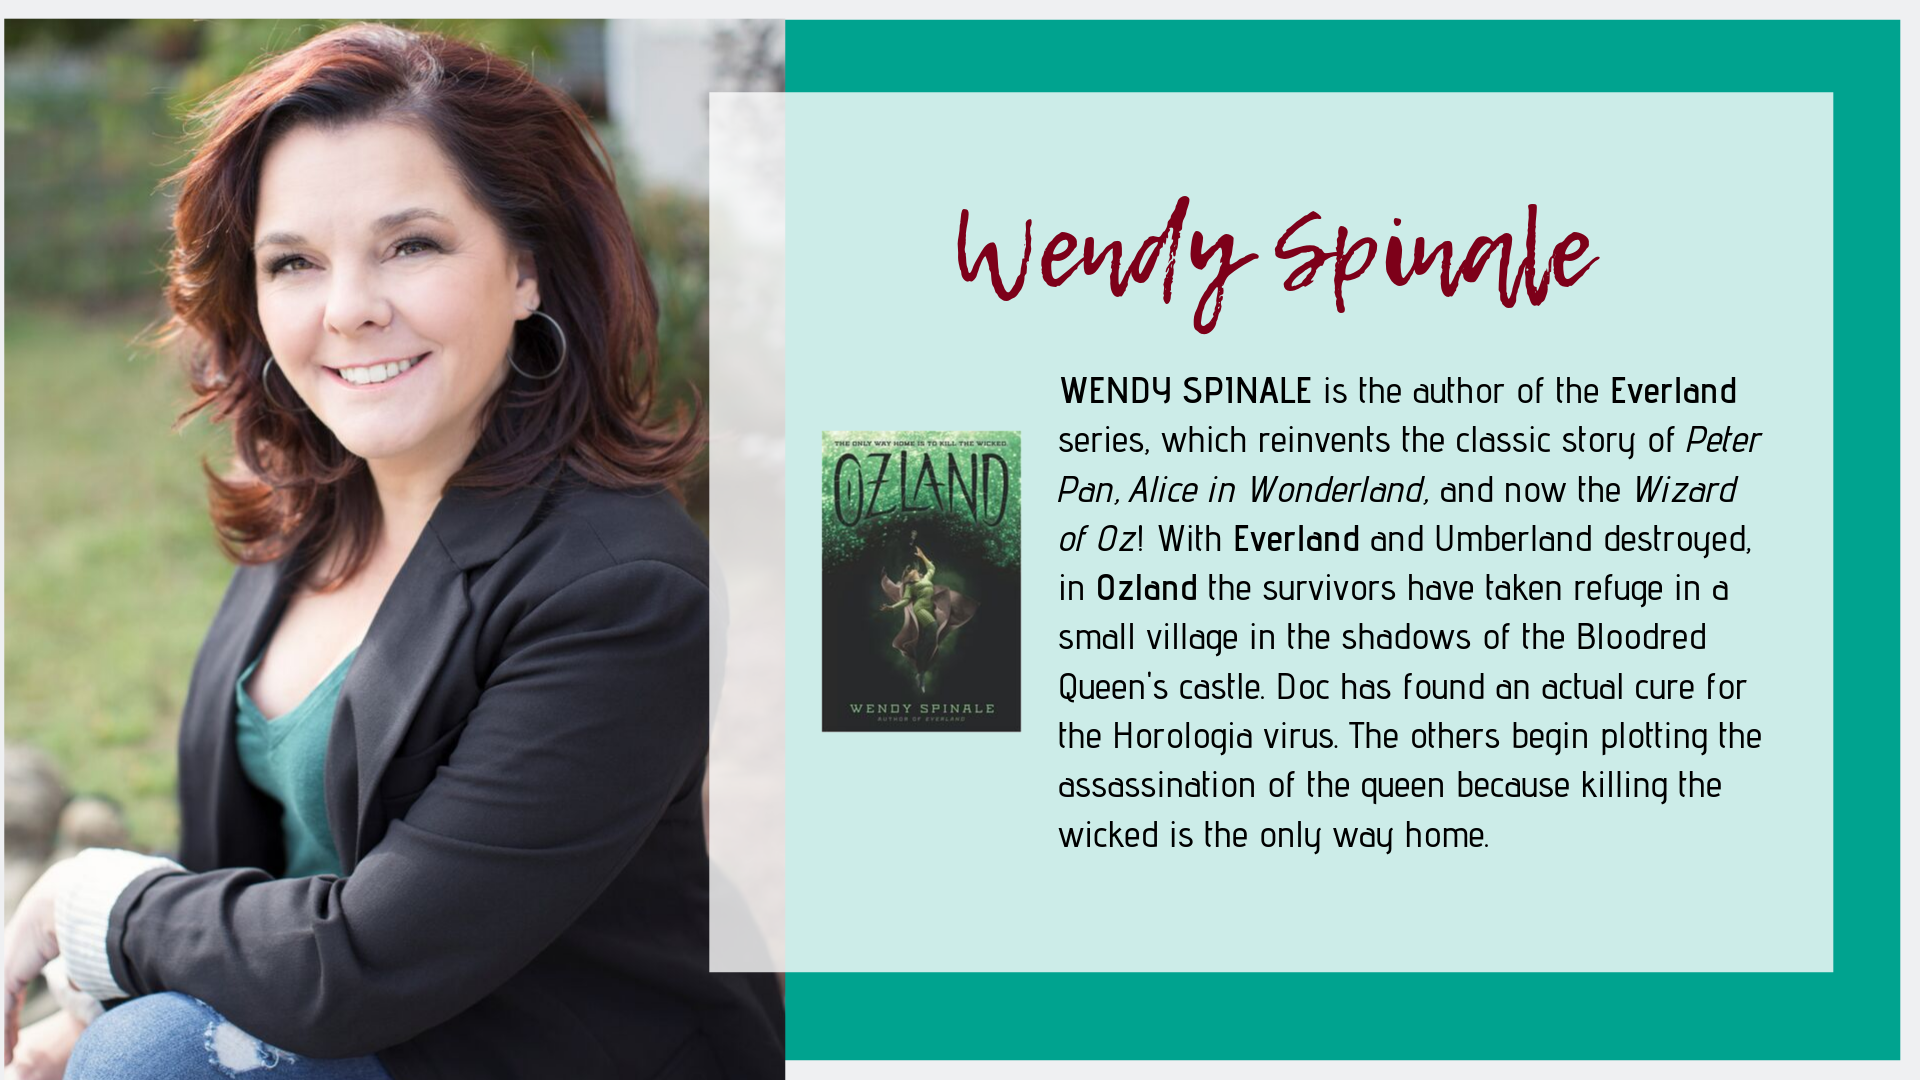 Wendy Spinale